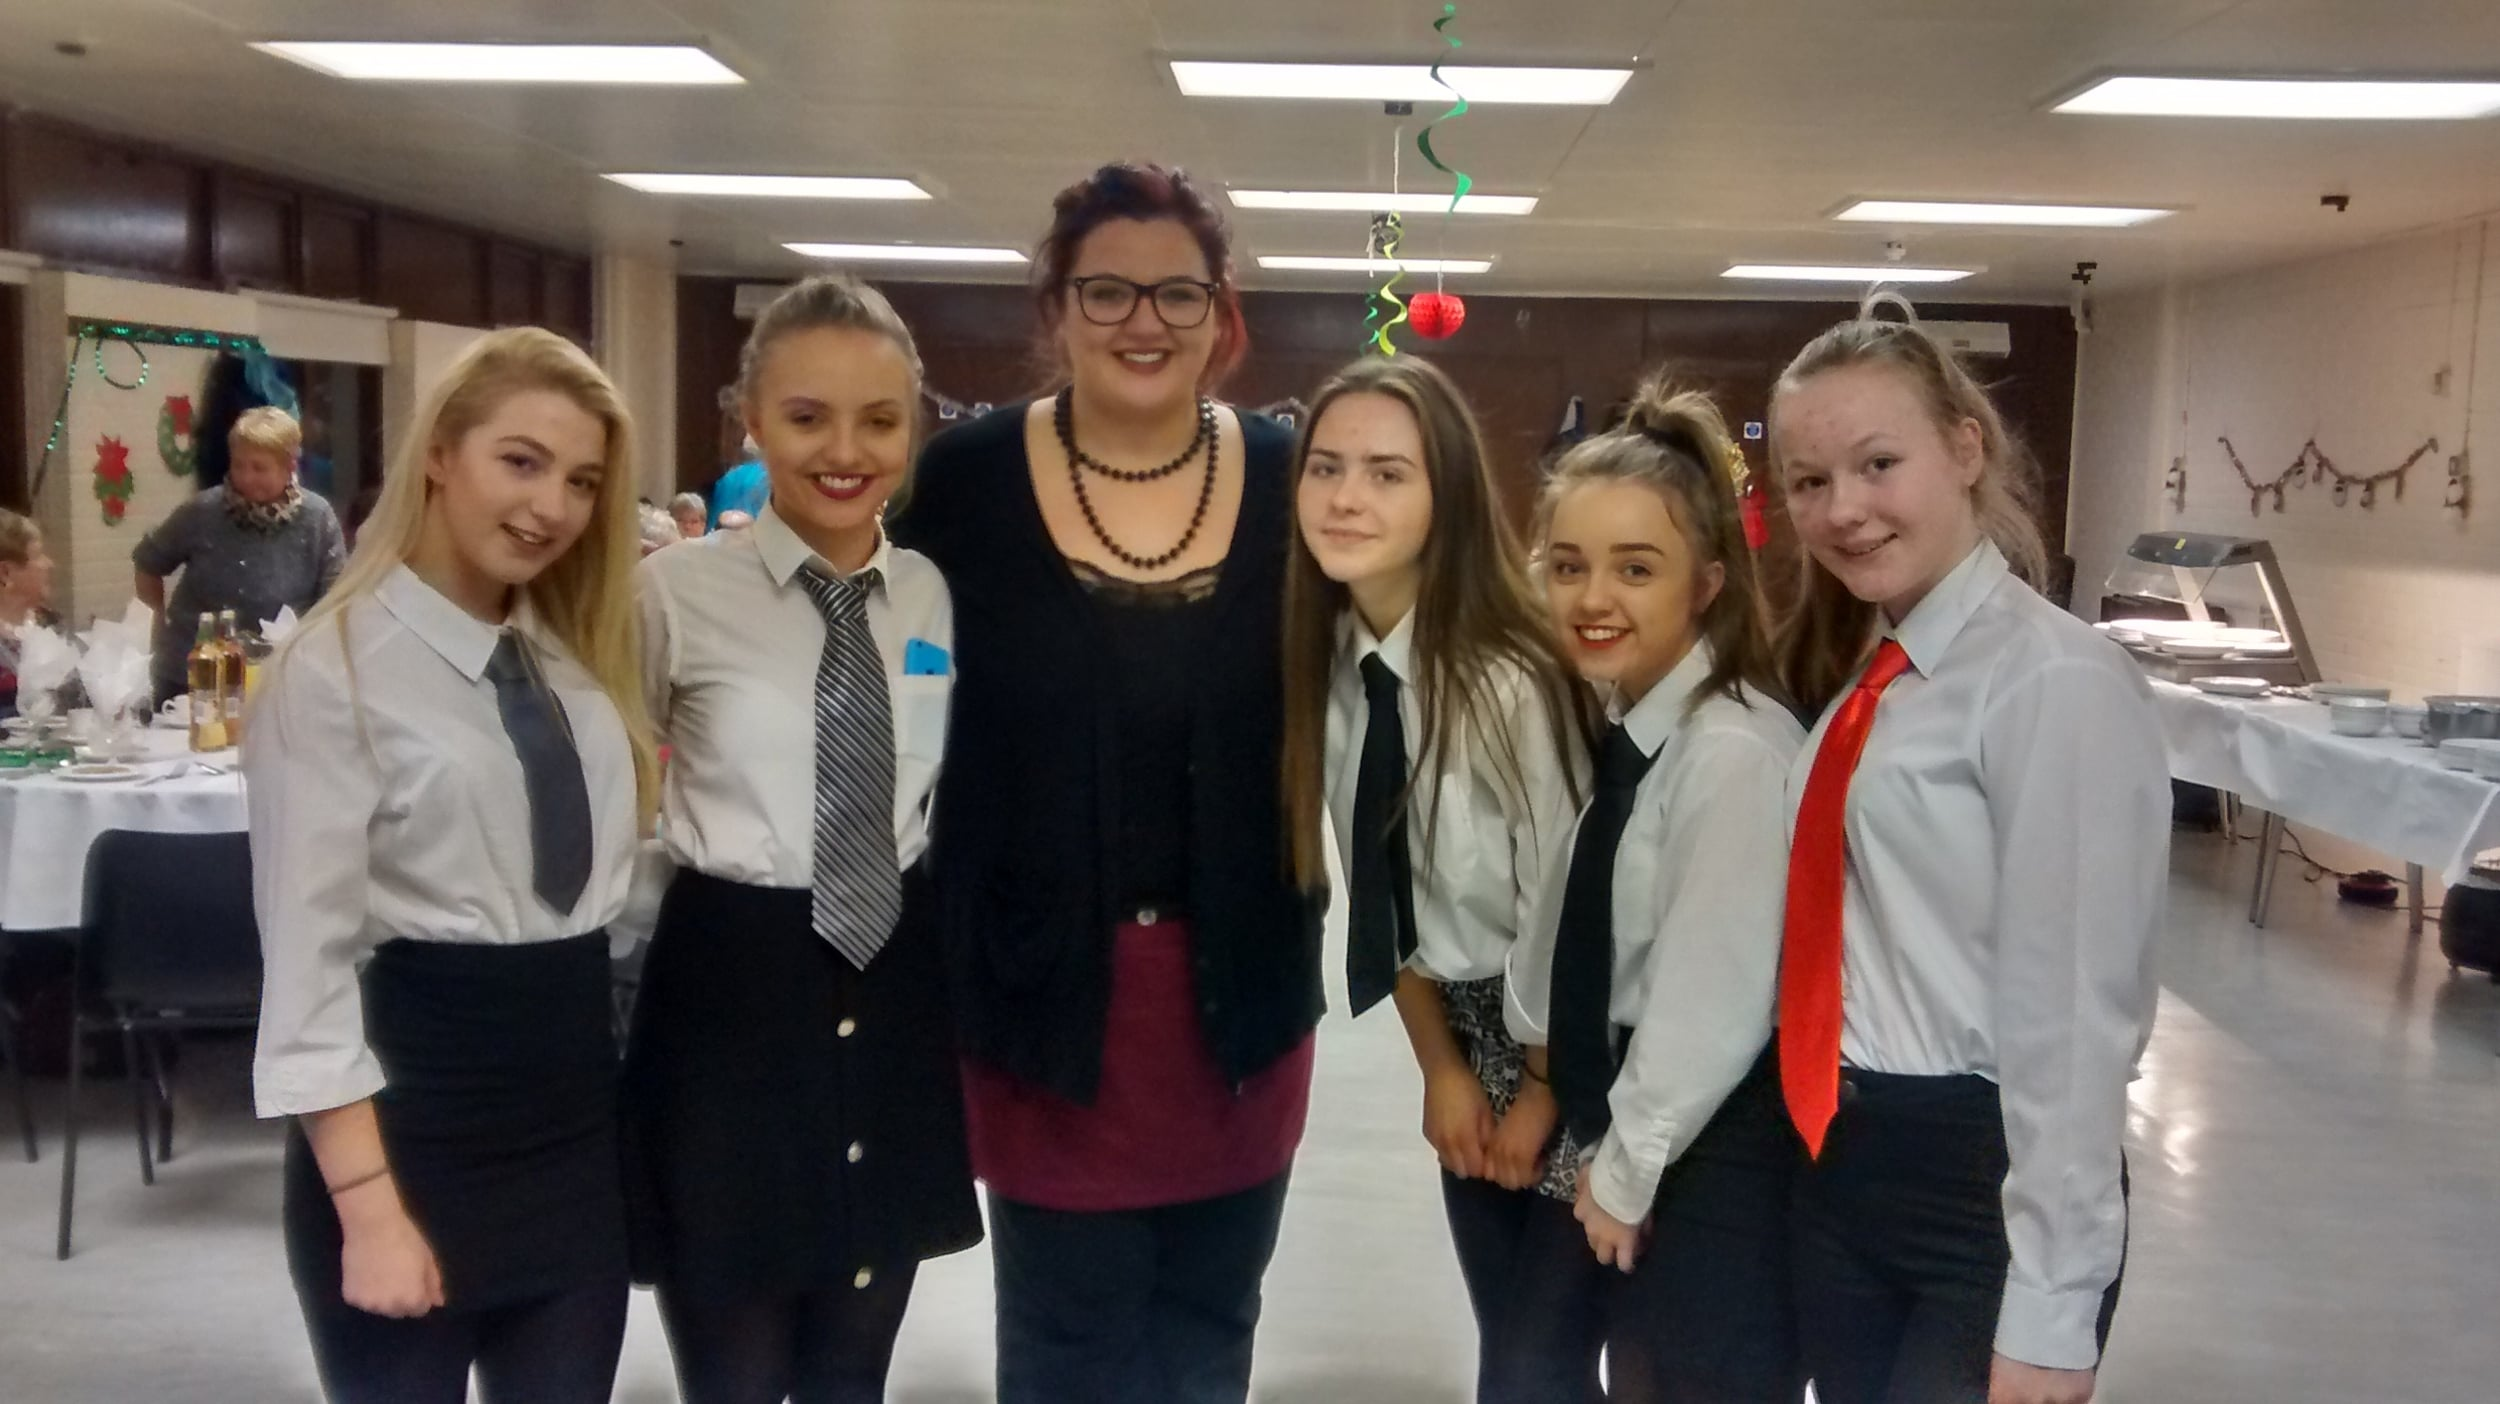 Youth worker Jayne (centre) with some lovely waitresses!